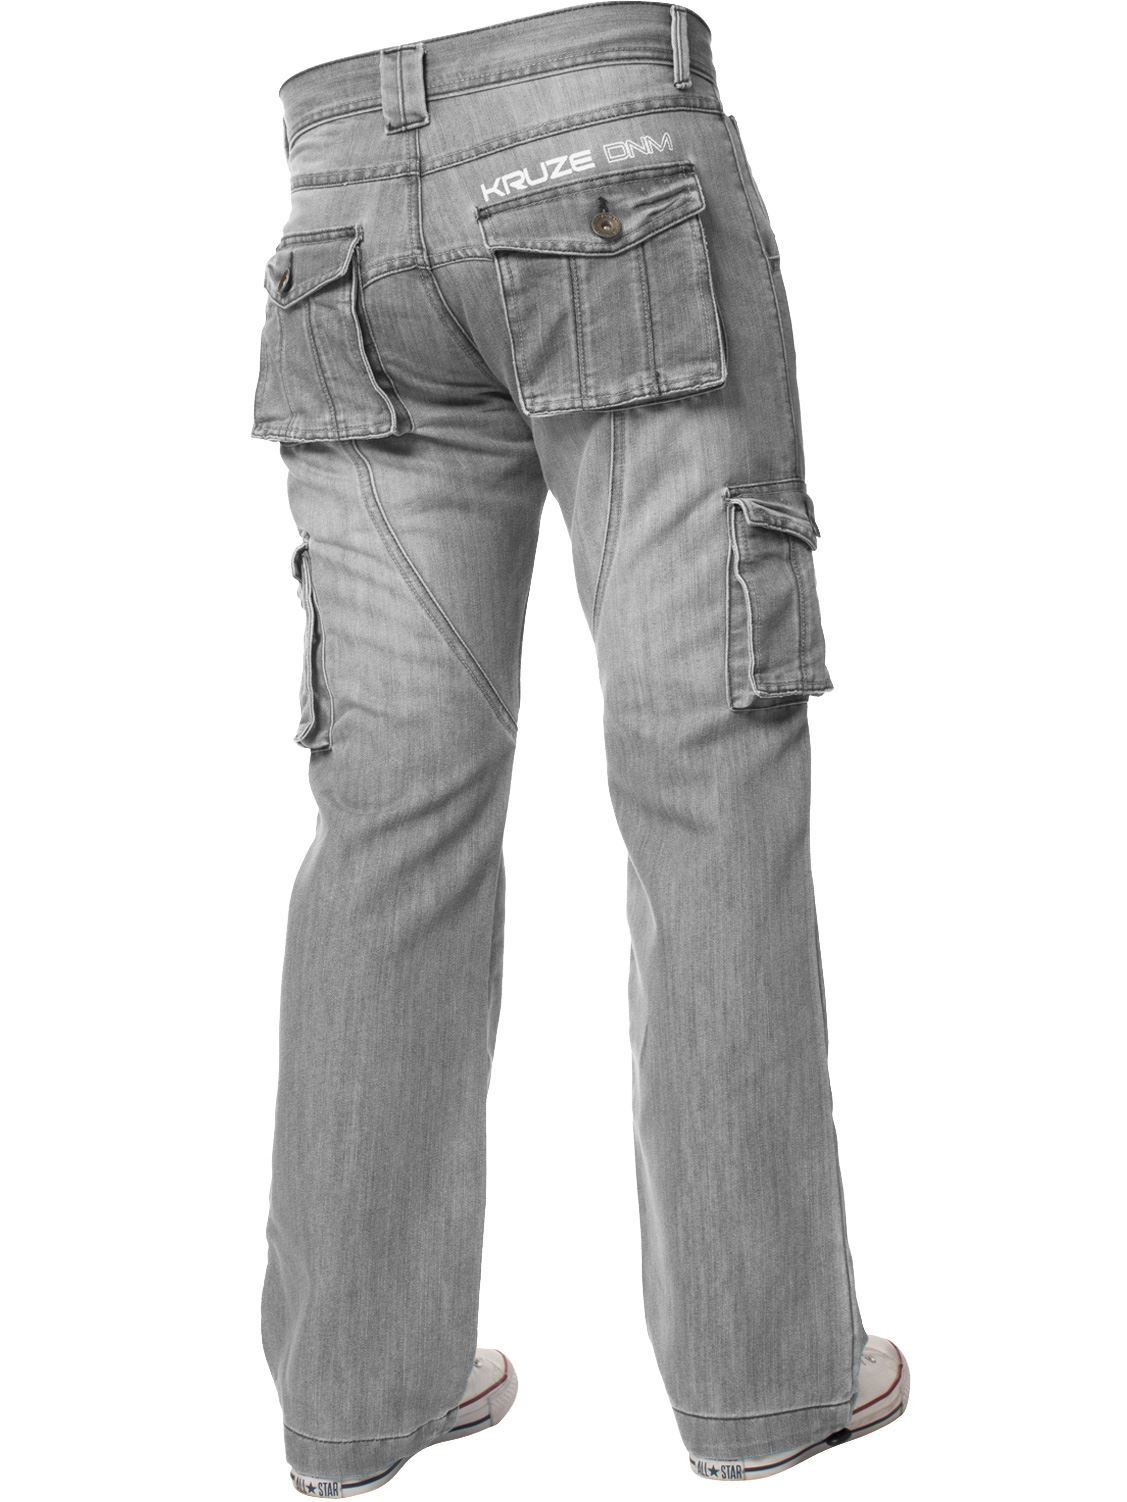 Kruze-Mens-Cargo-Combat-Jeans-Casual-Work-Denim-Pants-Big-Tall-All-Waist-Sizes thumbnail 29